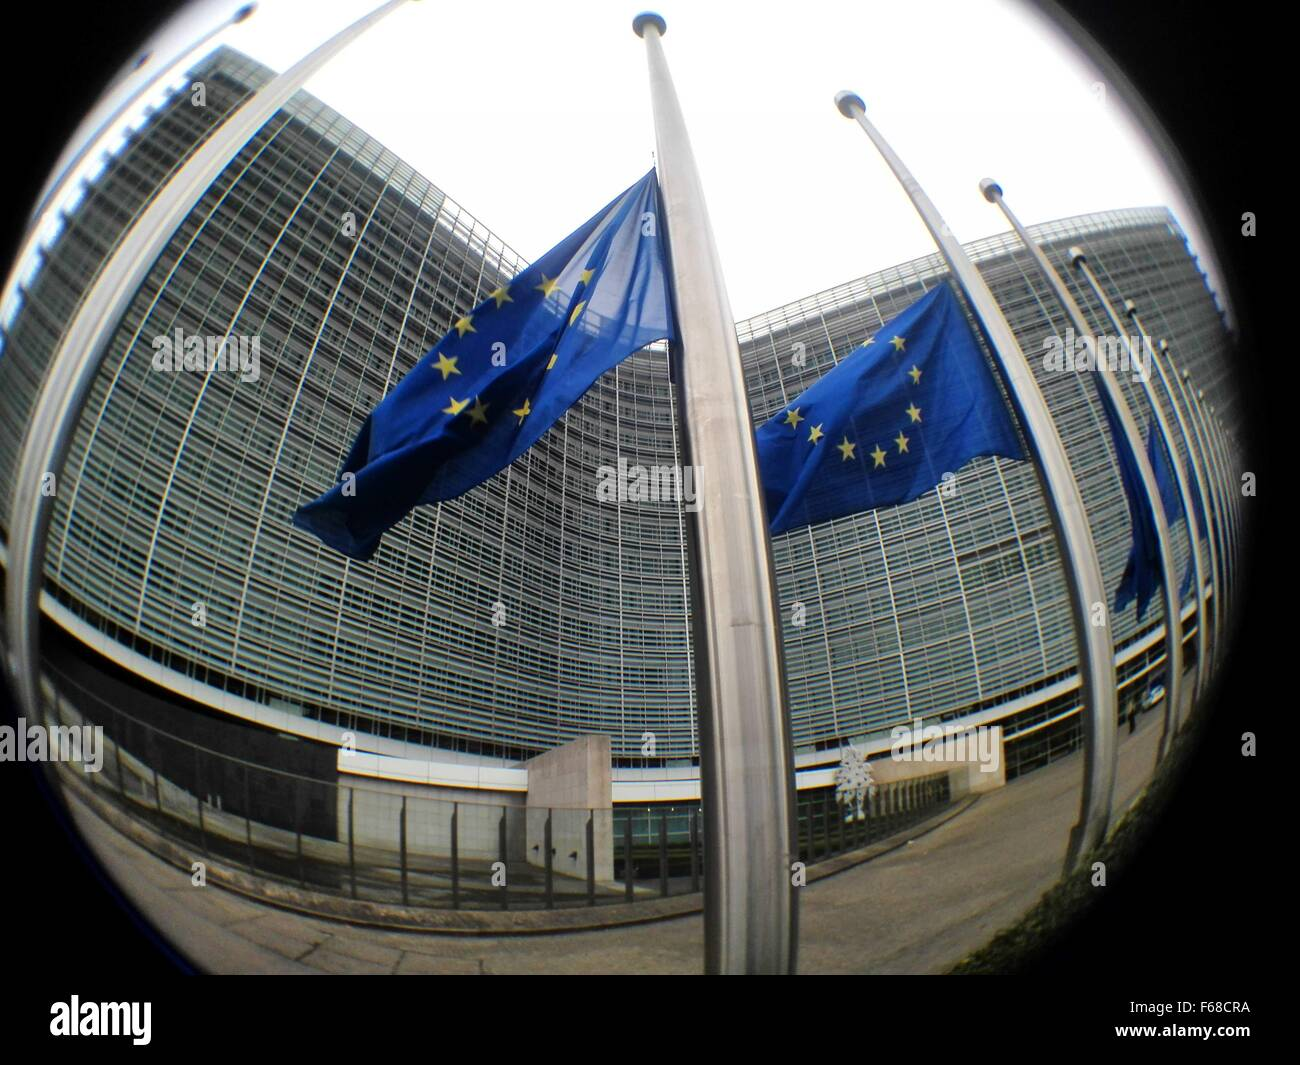 Brussels, Belgium. 14th Nov, 2015. European Union flags fly at half mast to mourn the victims of a series of attacks - Stock Image